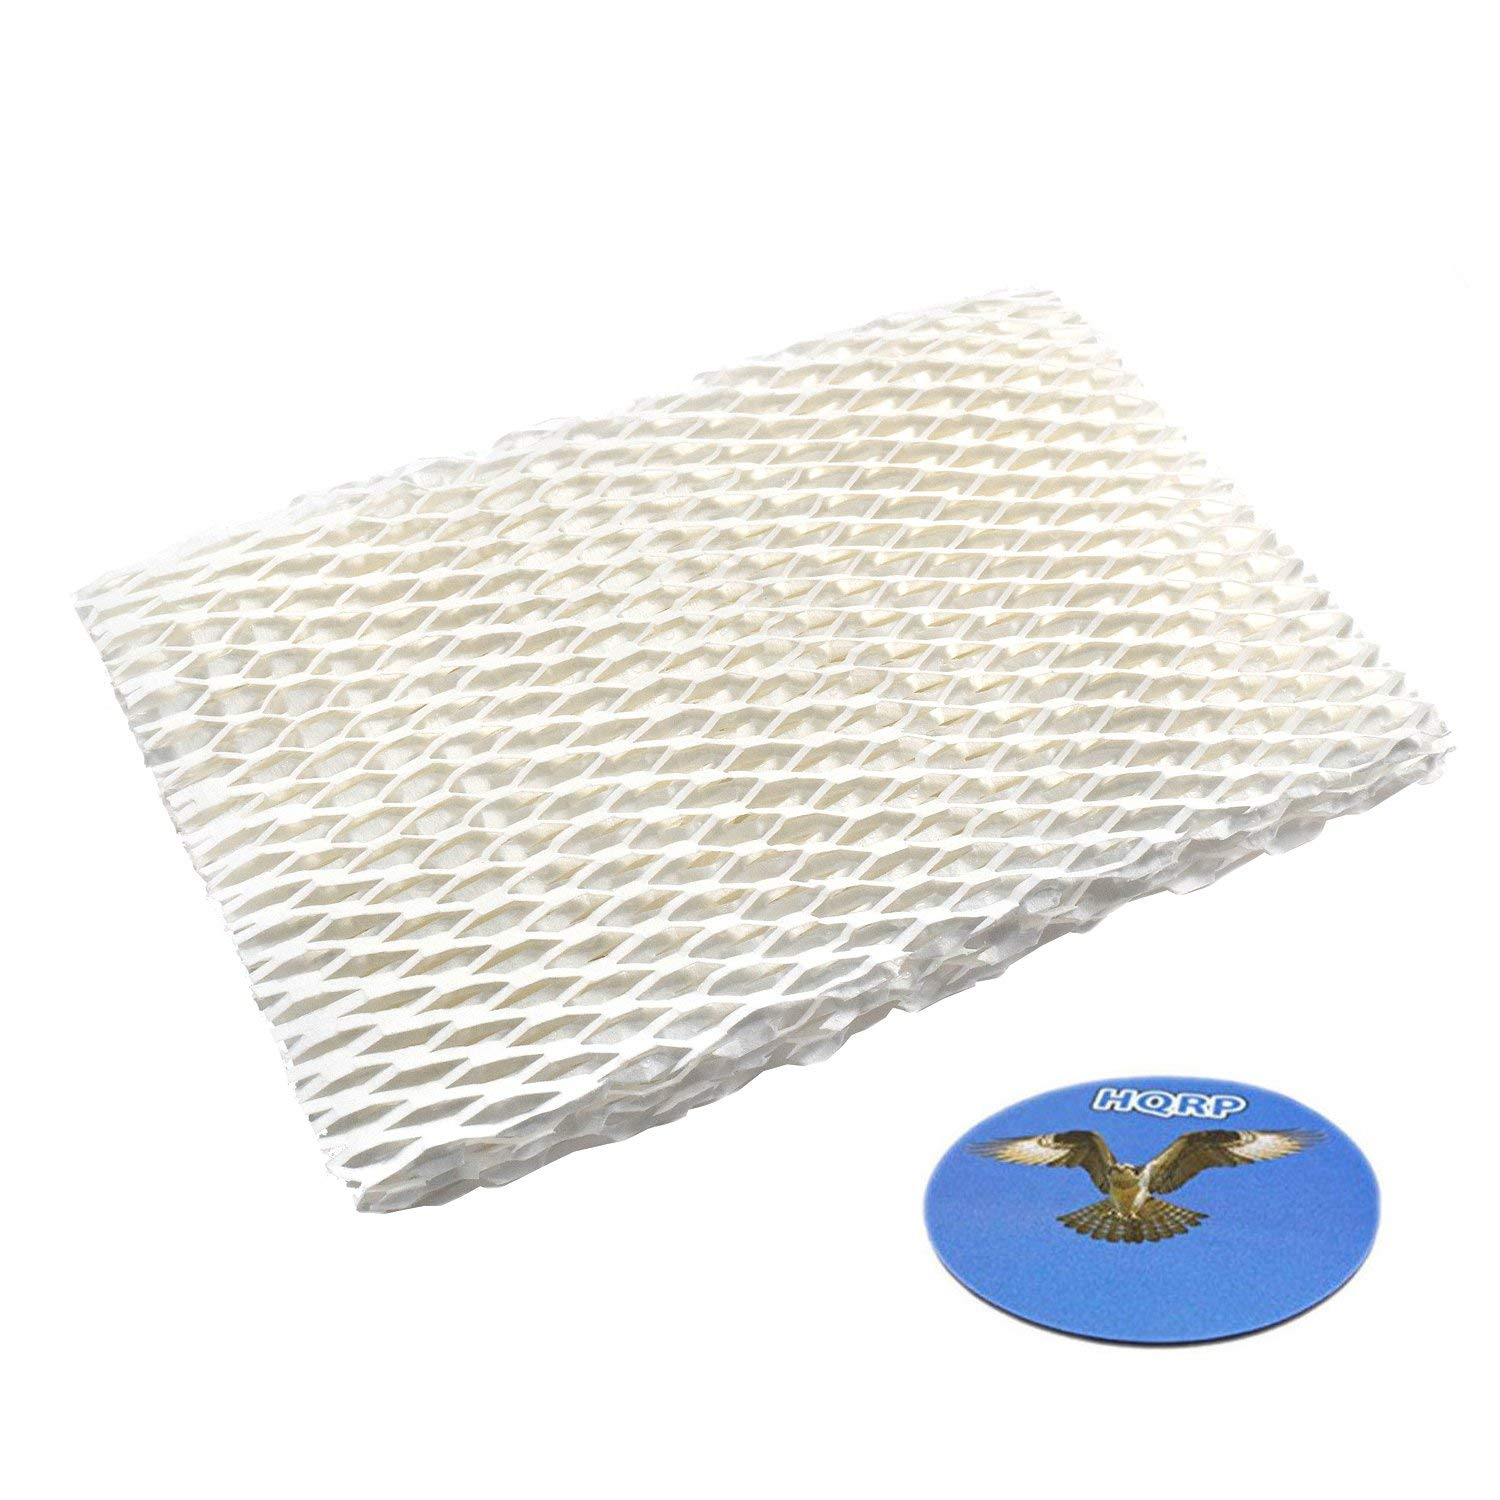 HQRP Humidifier Wick Filter for Honeywell HAC-700 / HAC-700PDQ / HAC700PDQV1 Filter B Replacement + HQRP Coaster